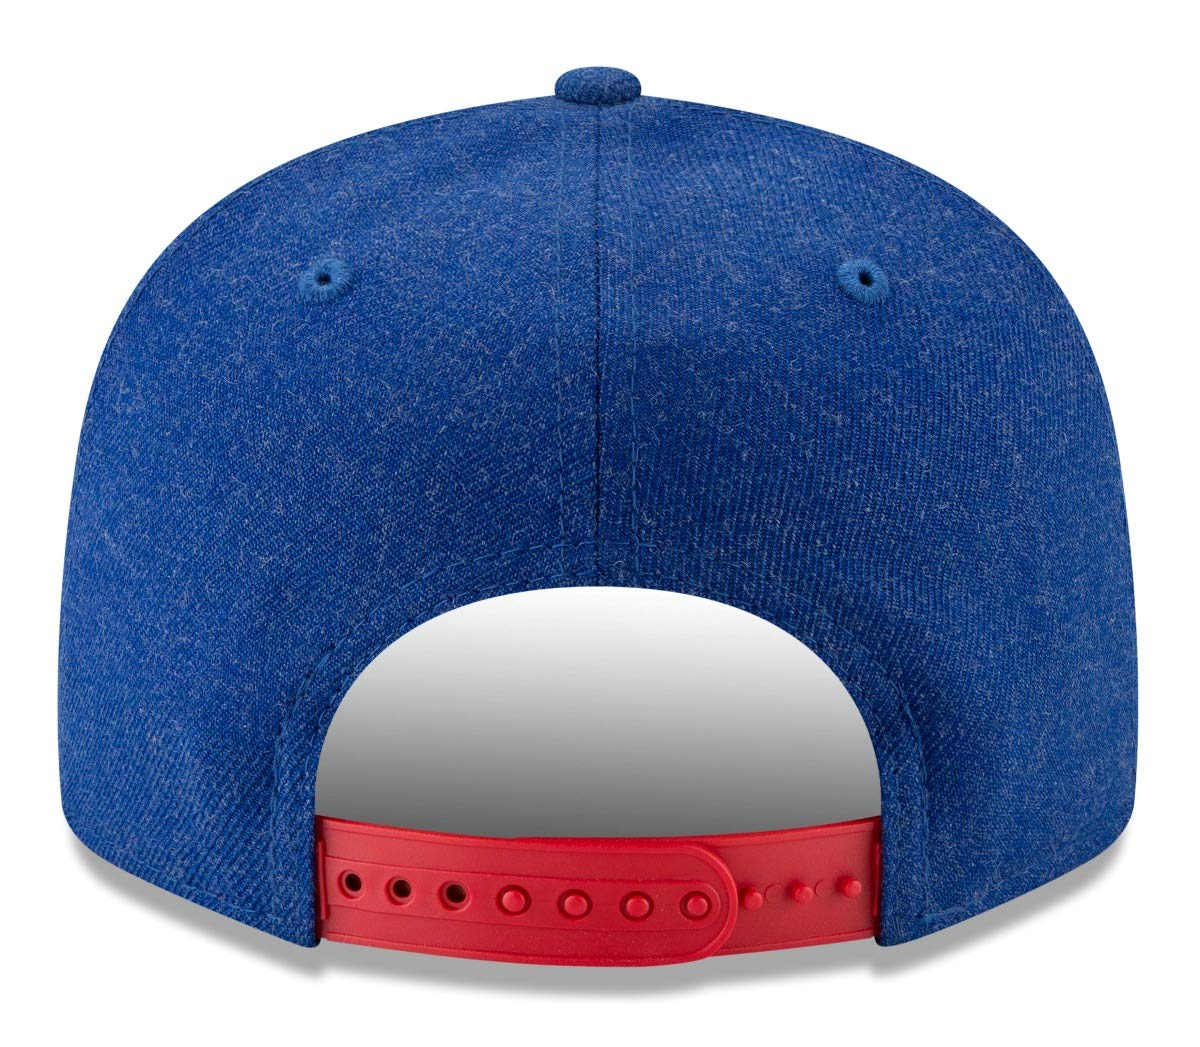 check out 4b514 00a4a Amazon.com   New Era Montreal Expos 9FIFTY MLB Cooperstown Heather Hype Snapback  Hat   Sports   Outdoors